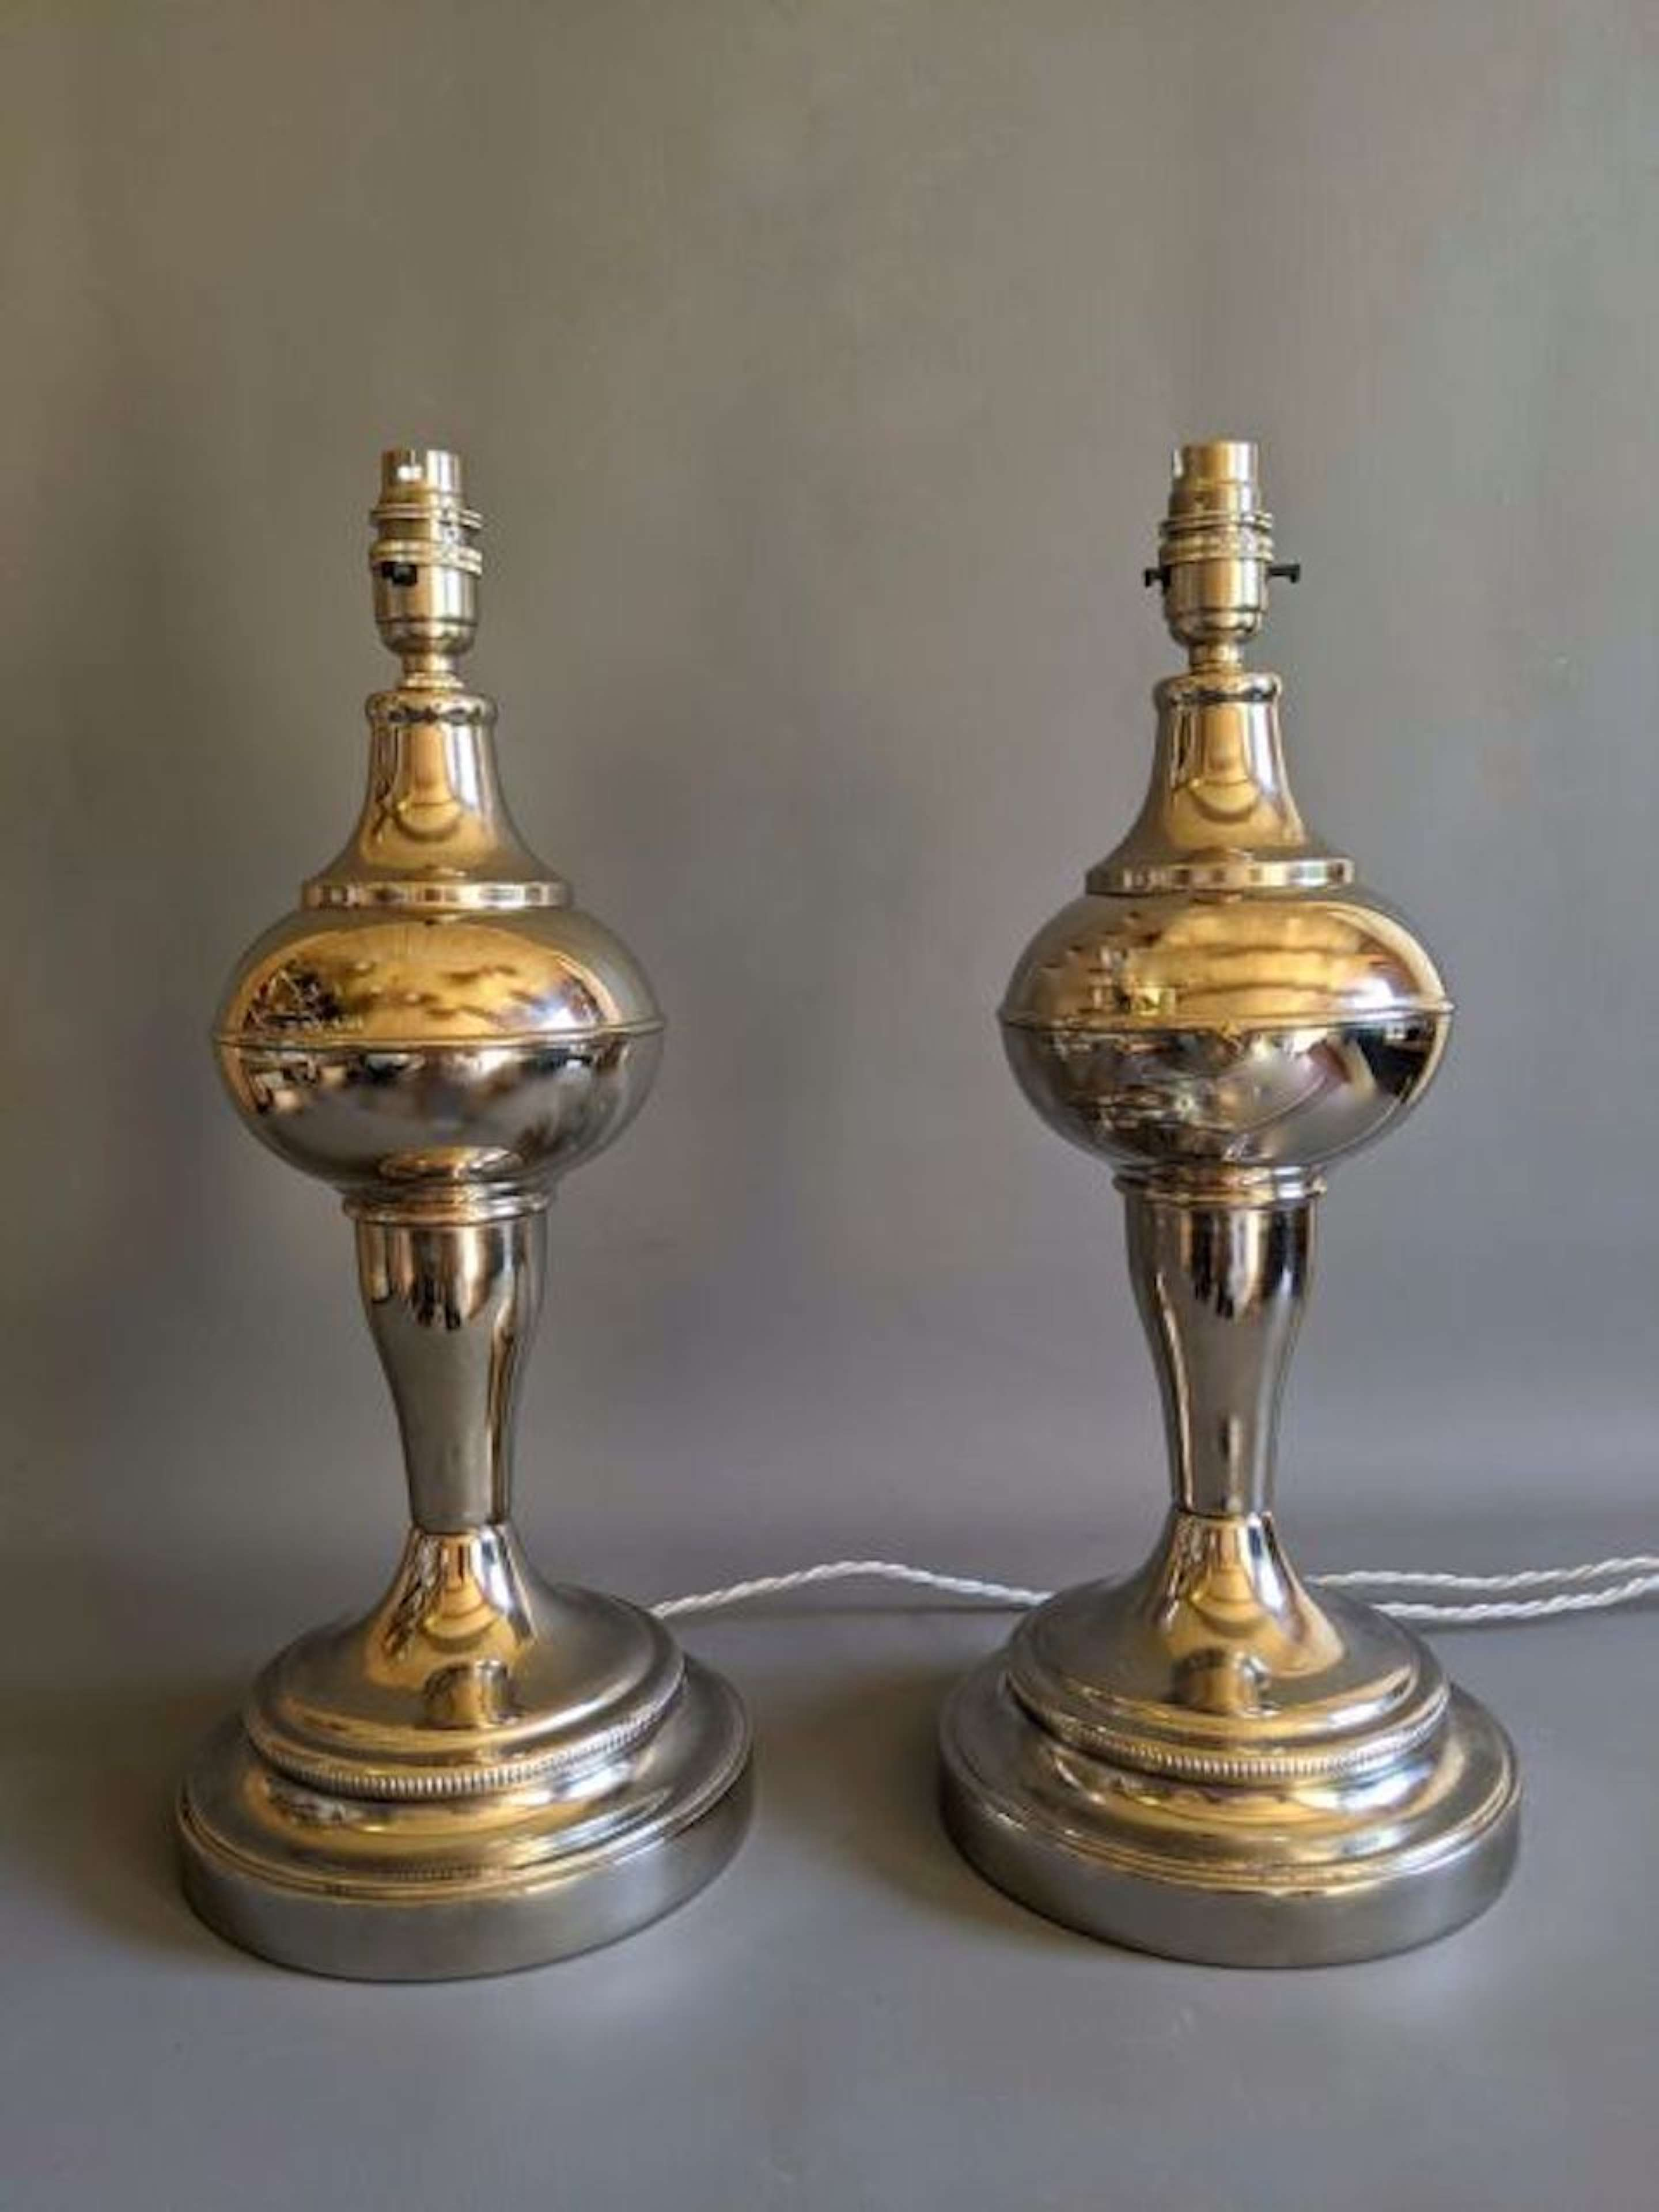 Unique Pair of Early 20th Century Table Lamps